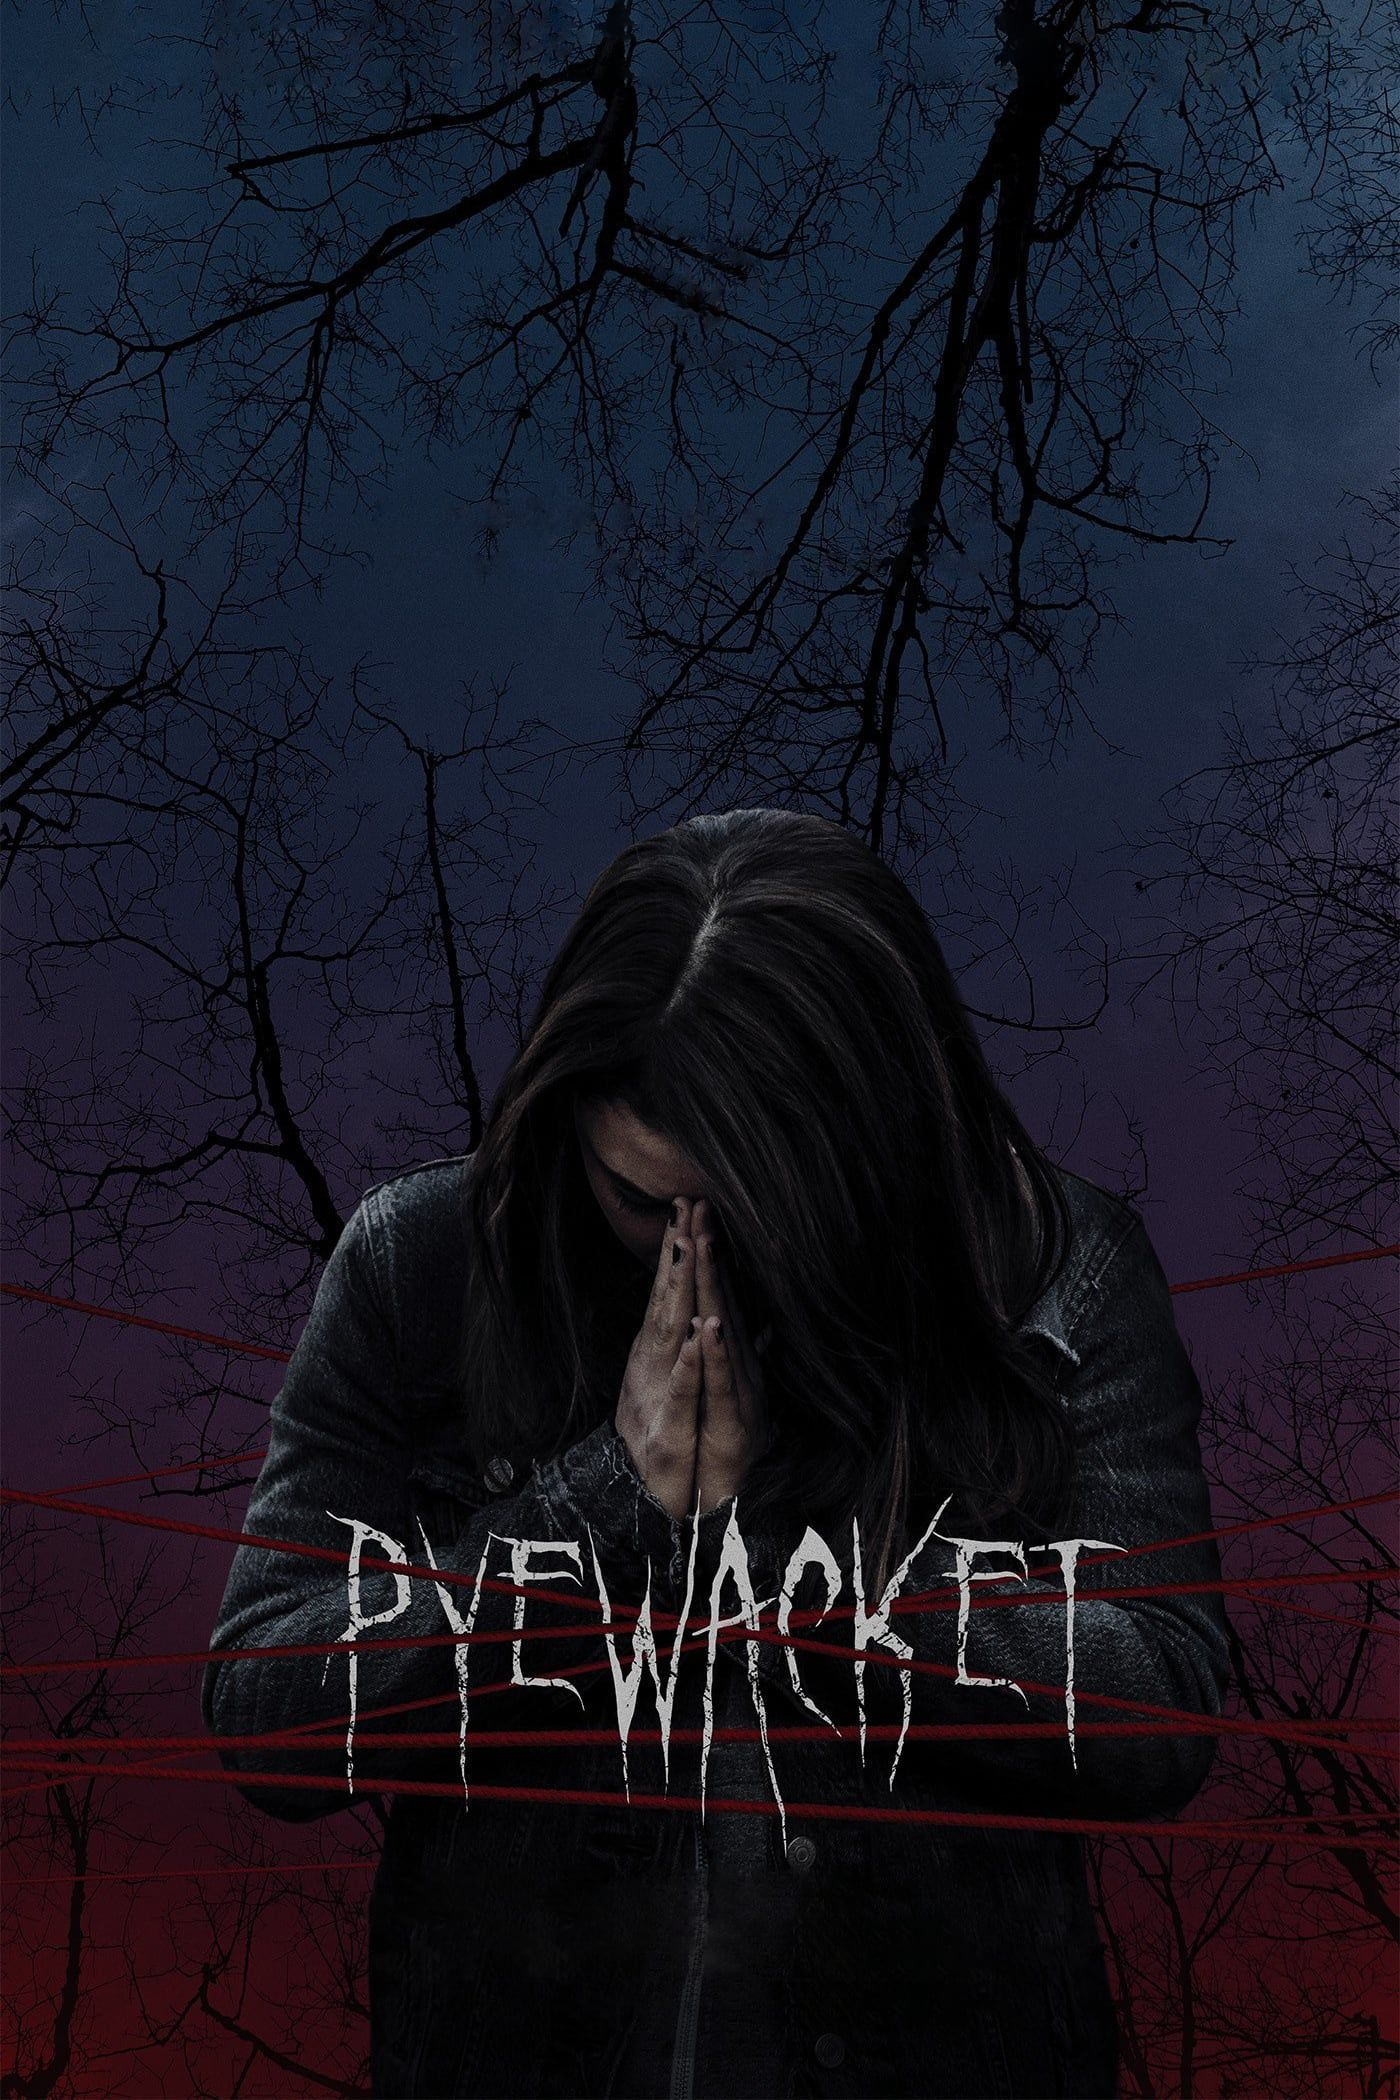 .Pyewacket FULL MOVIE Streaming Online in HD720p Video